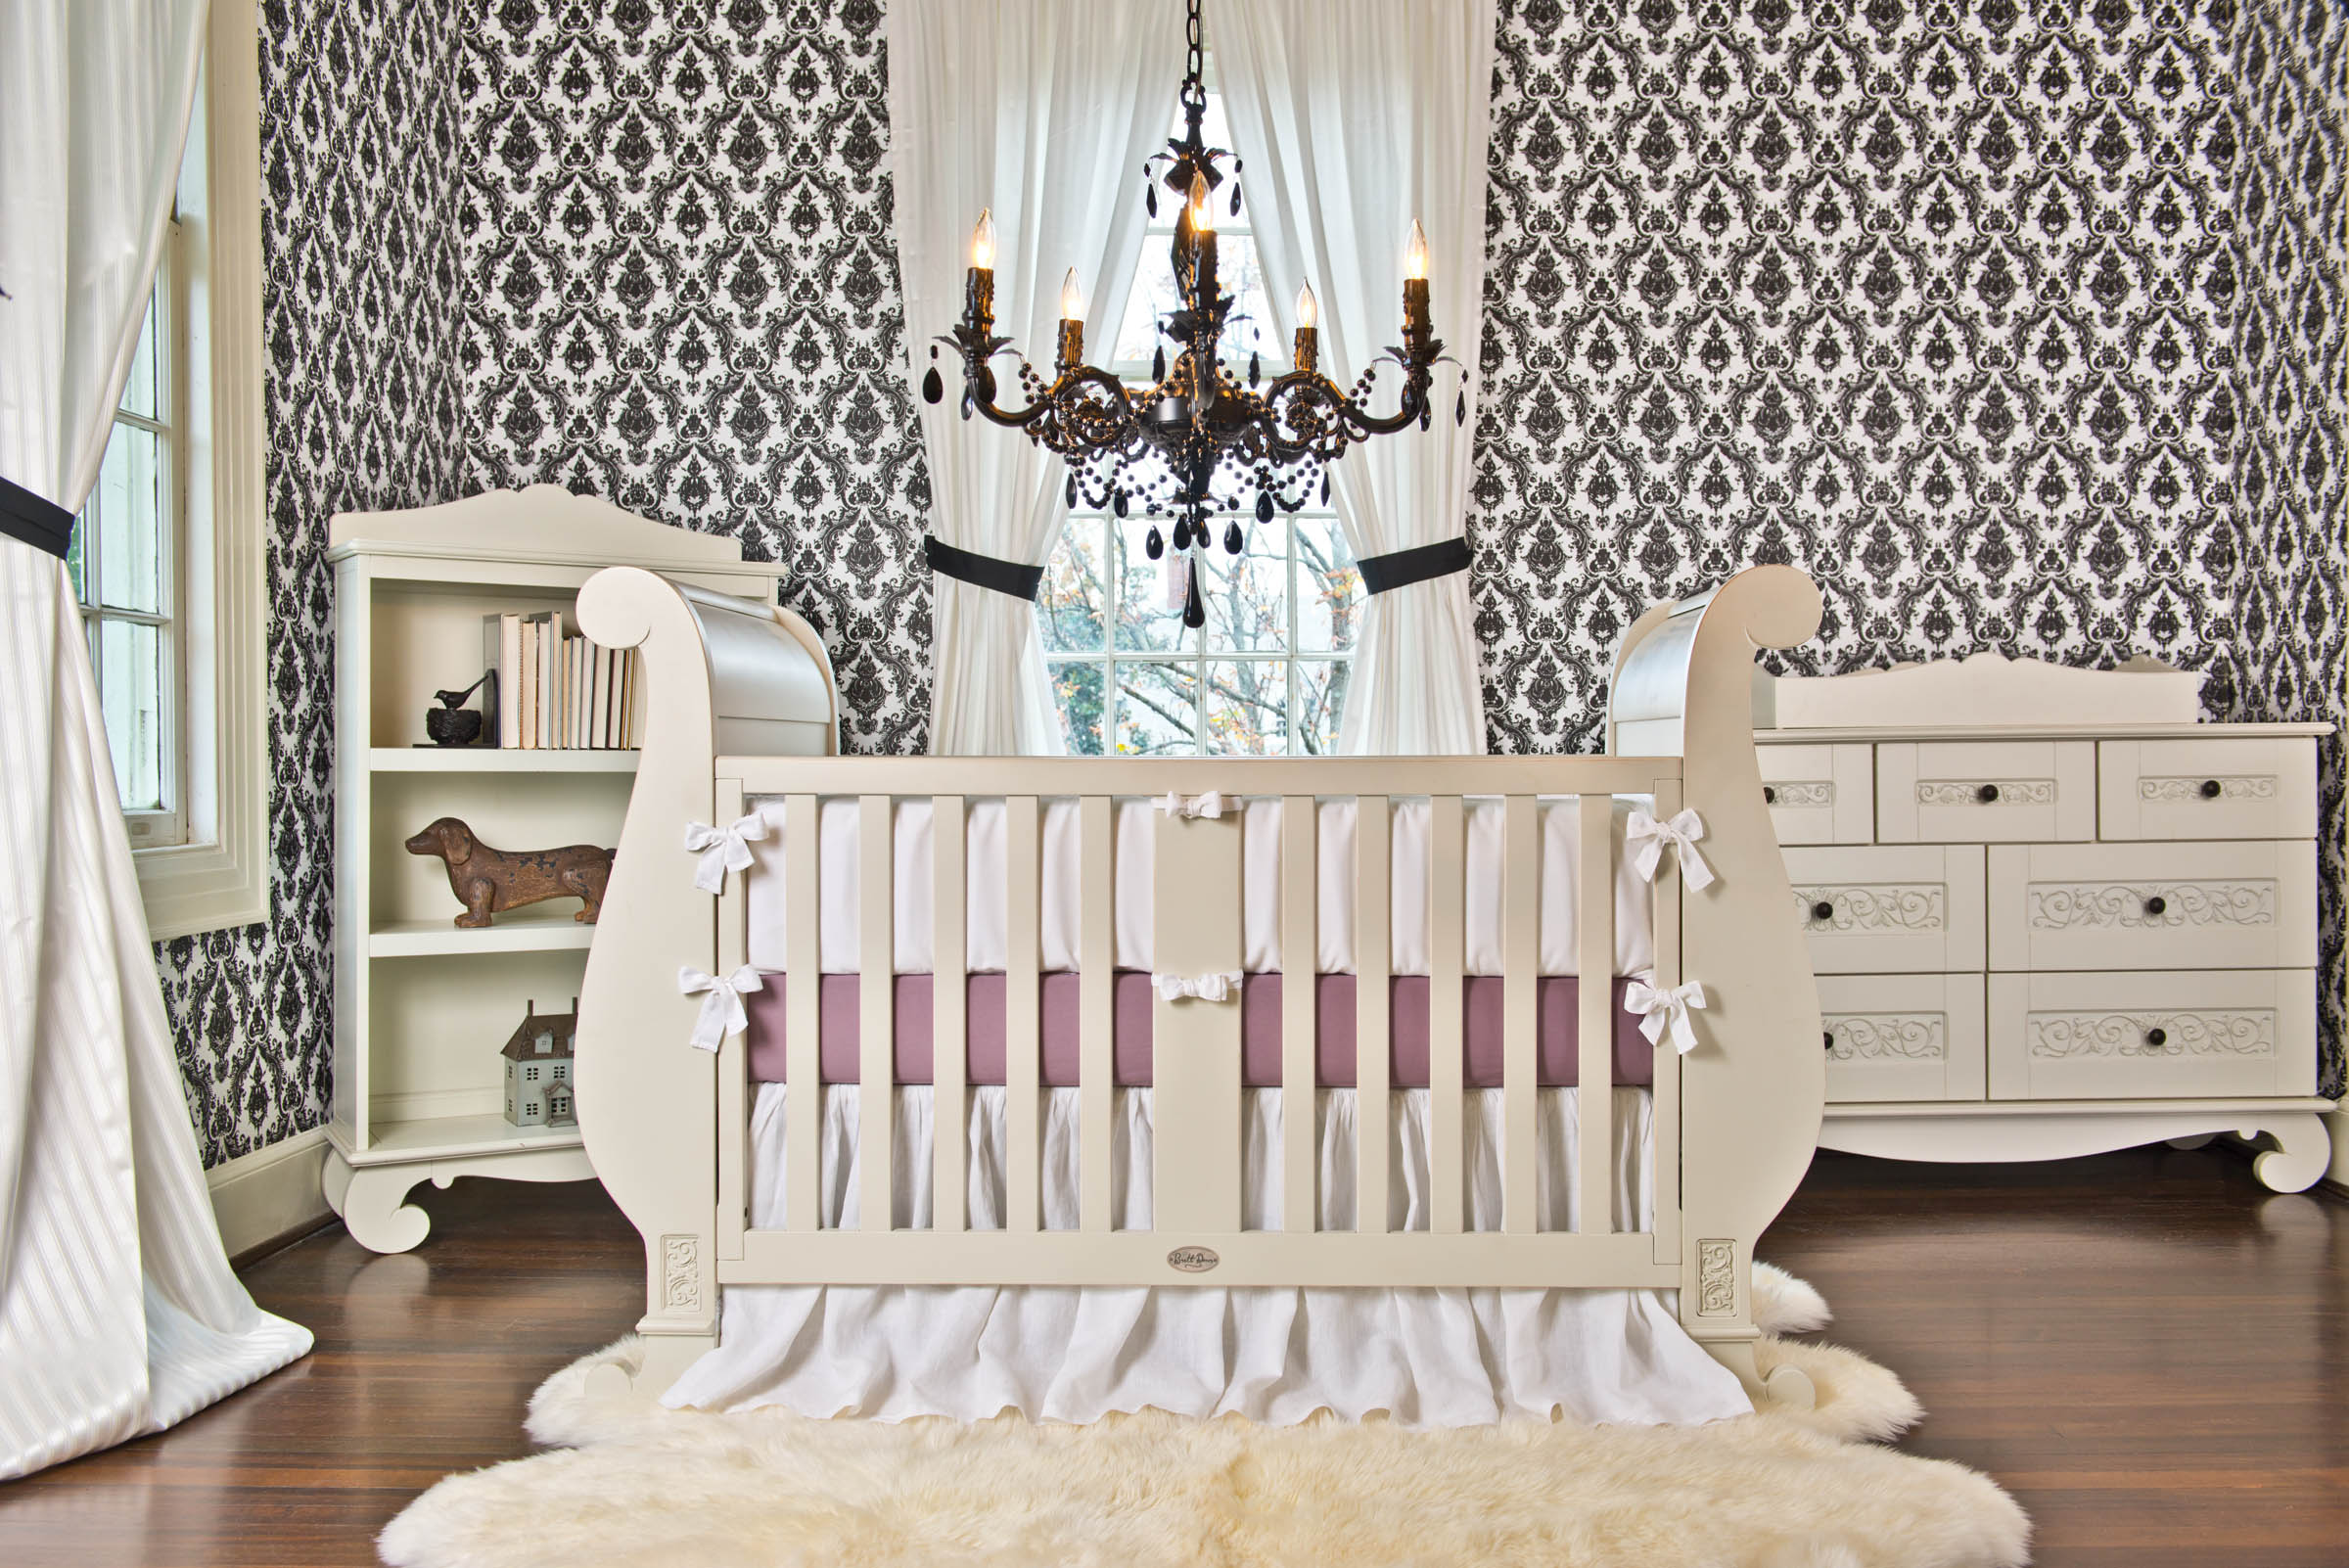 Chelsea Sleigh Crib from Bratt Decor